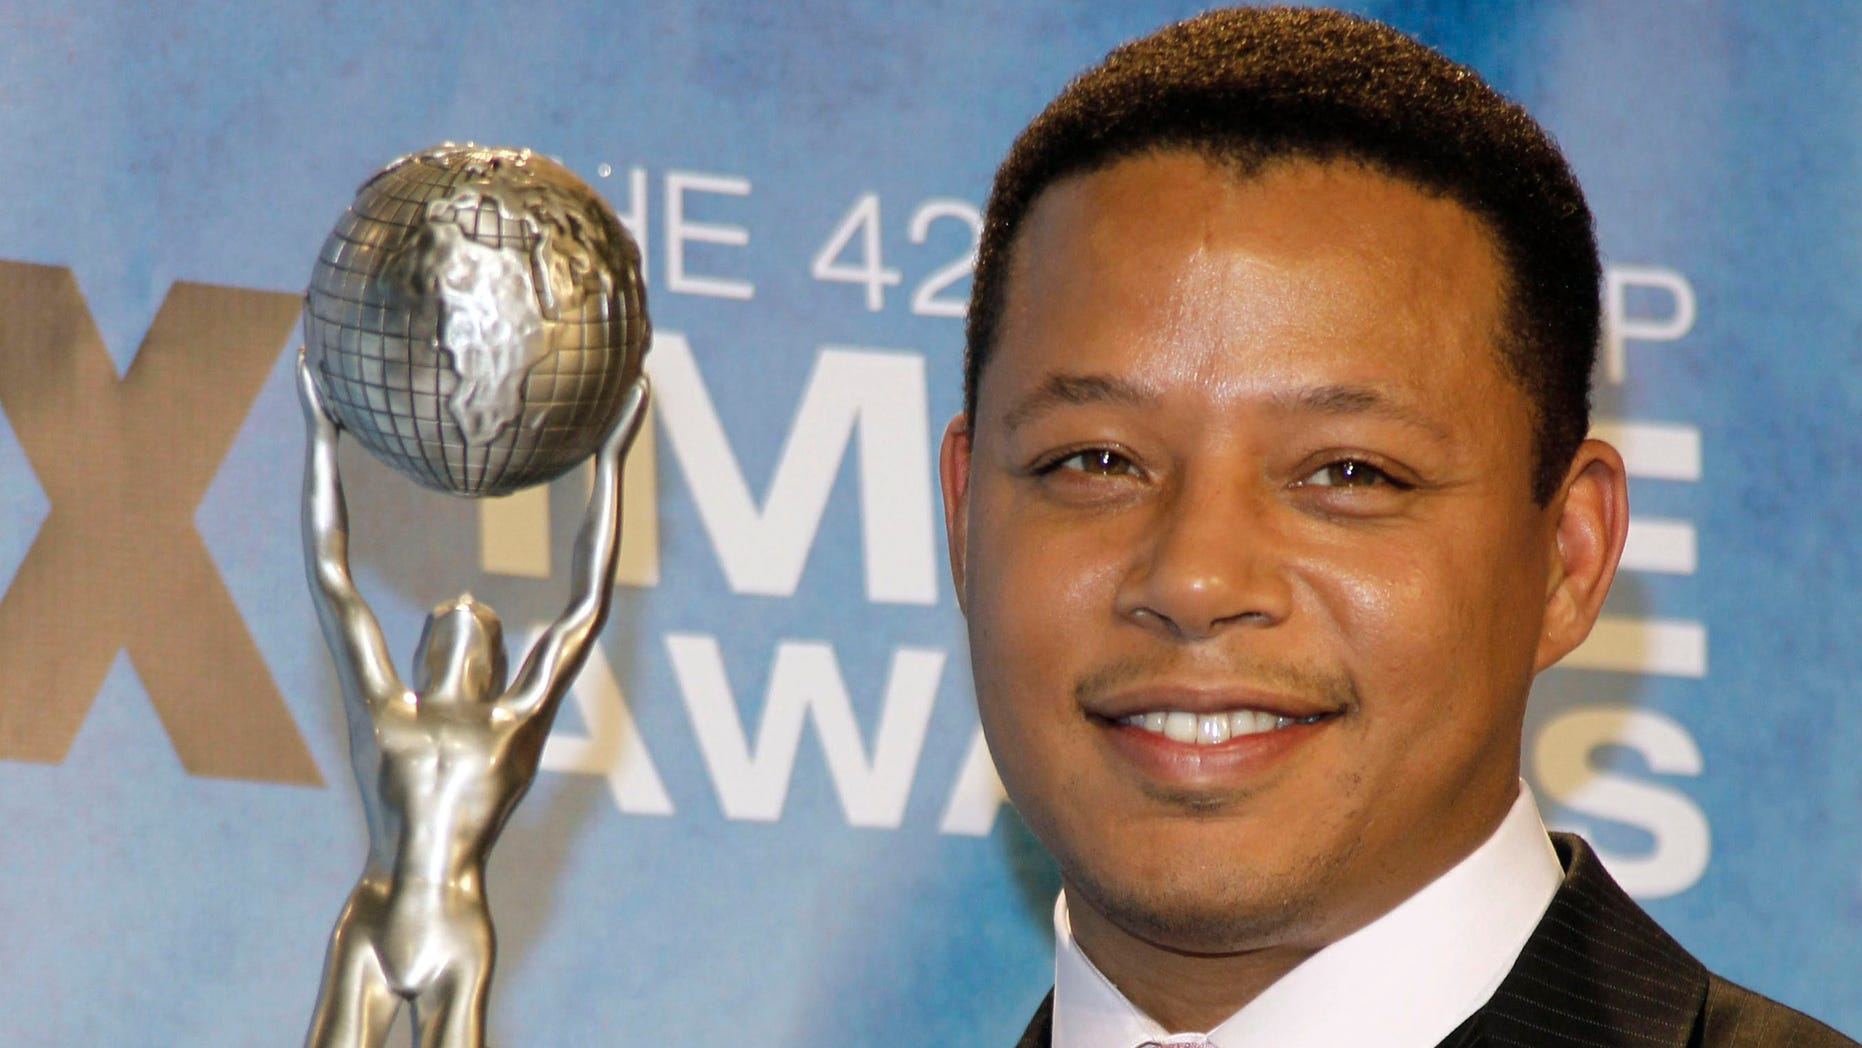 March 4, 2011. Actor Terence Howard poses at the NAACP Awards in Los Angeles, California.